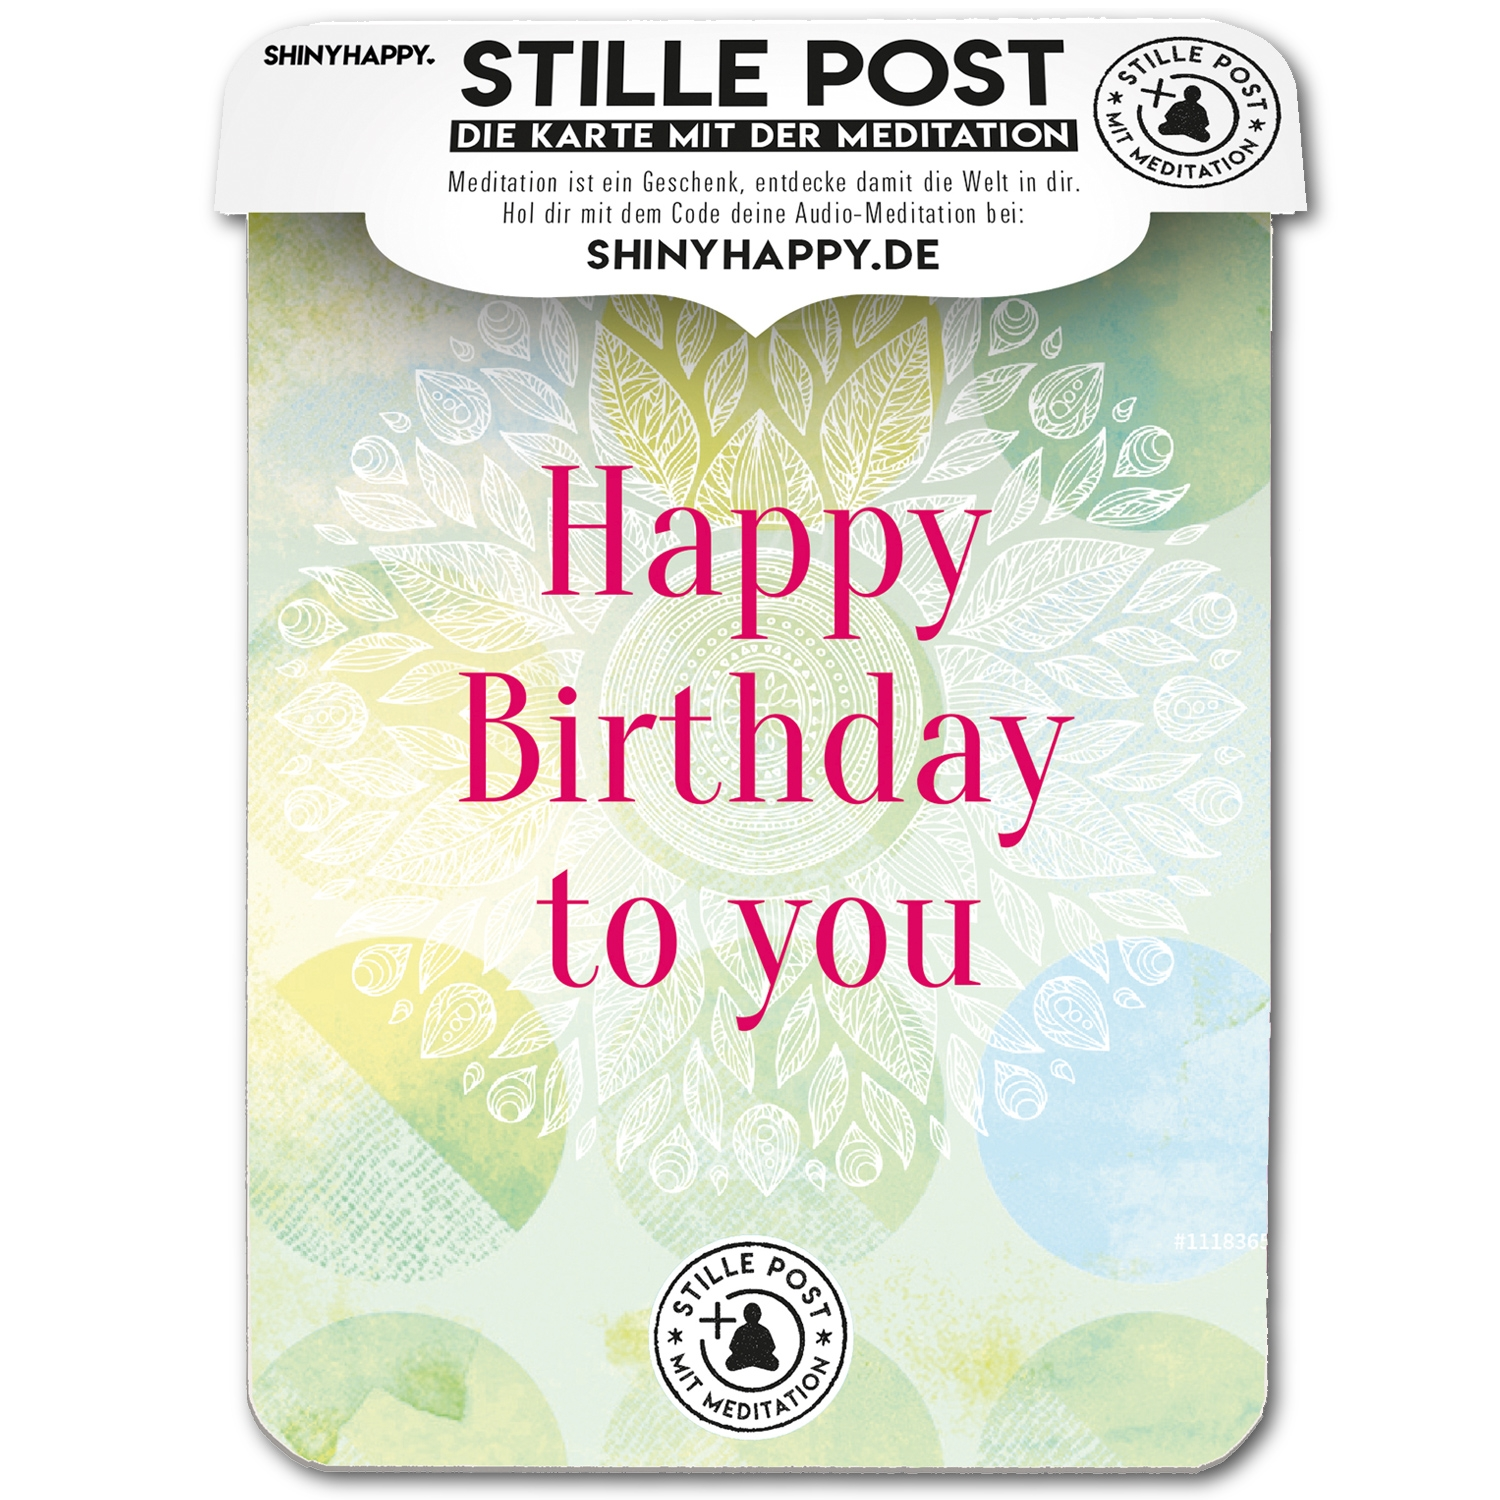 stille_post_birthday_to_you_A